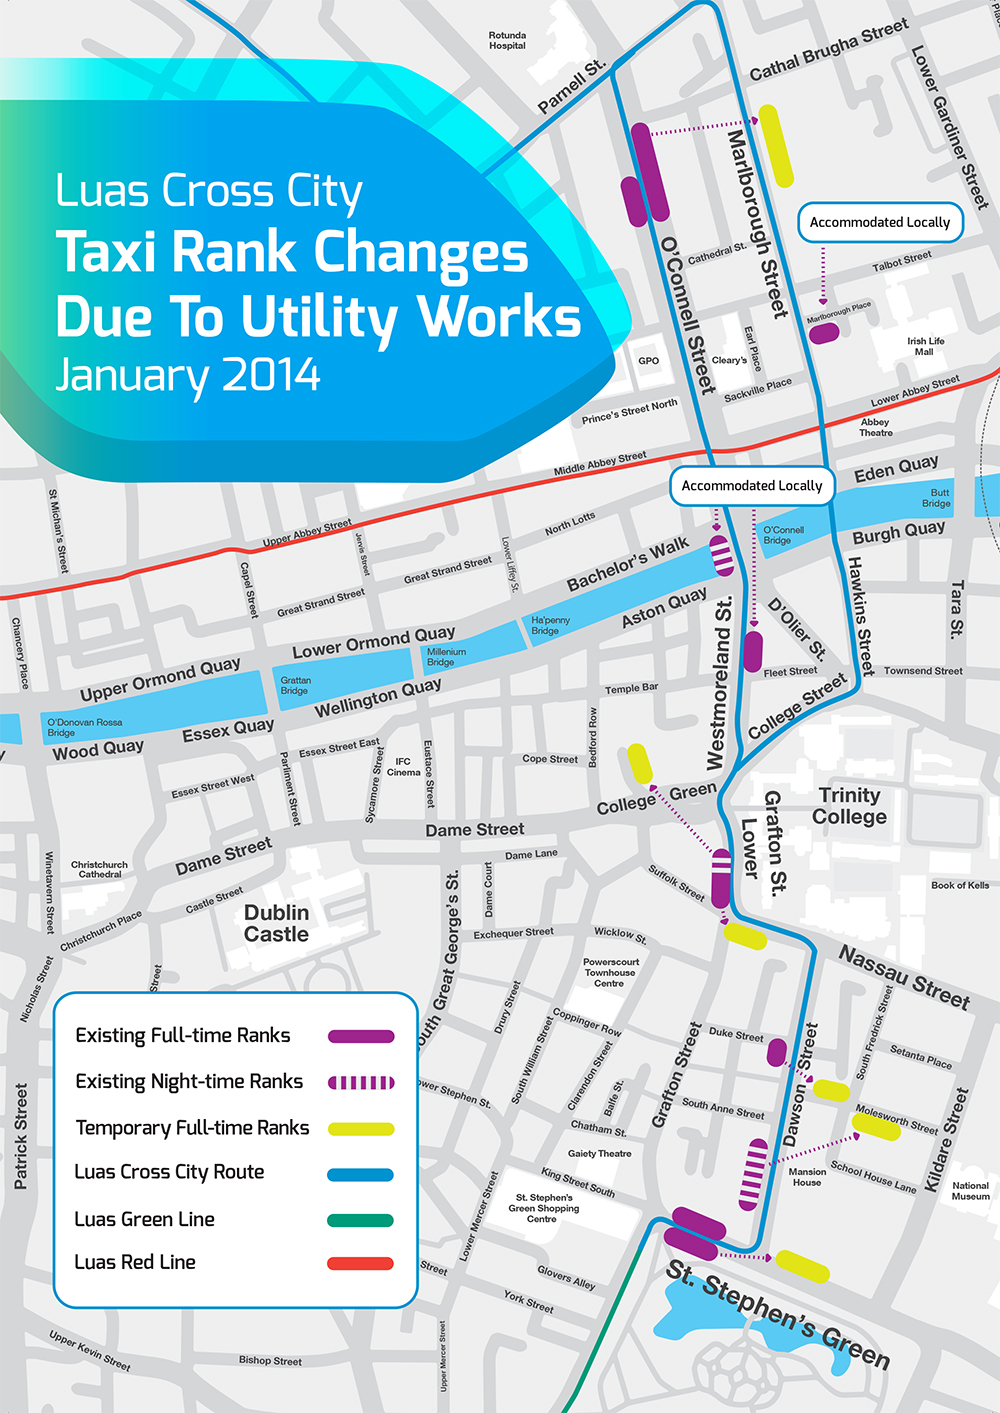 LuasCrossCityLeaflet_Taxi_Rank_Changes